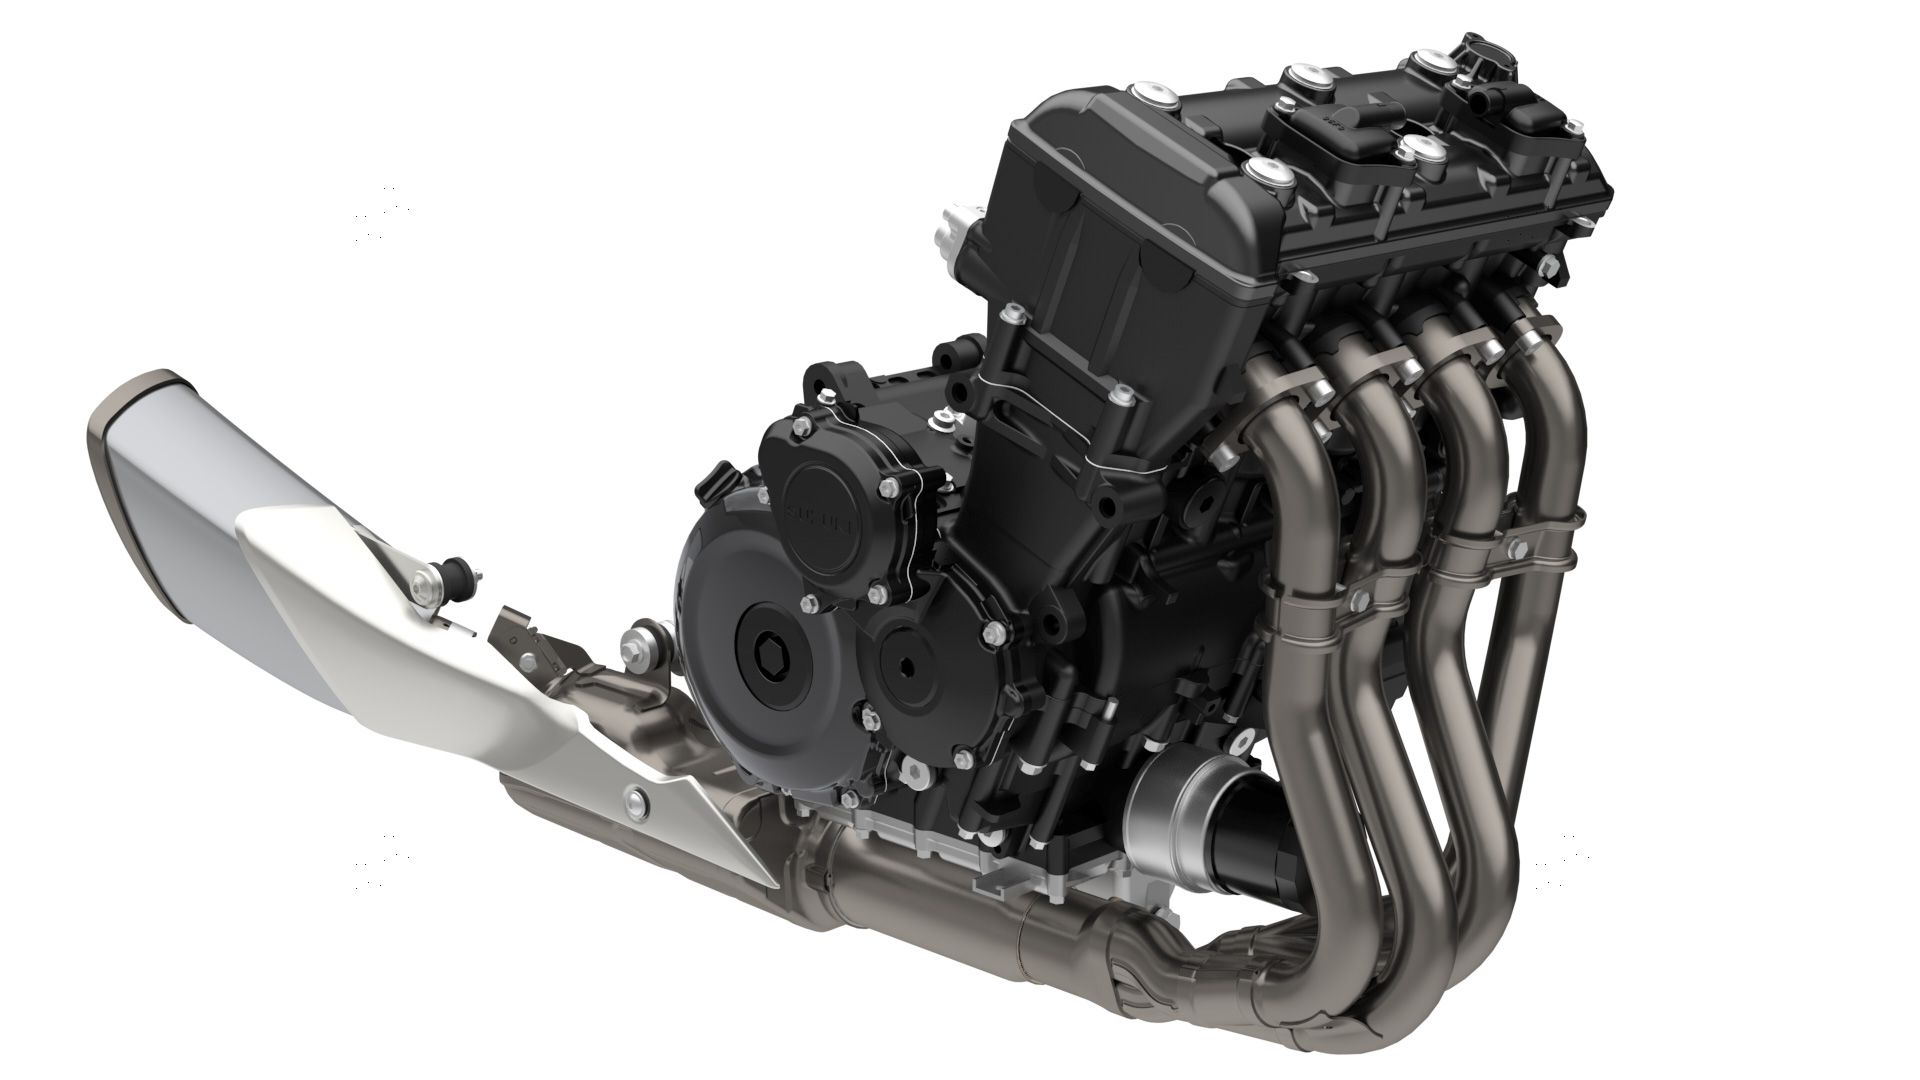 Suzuki tuned the 999cc inline-four specifically for sport-touring duty.